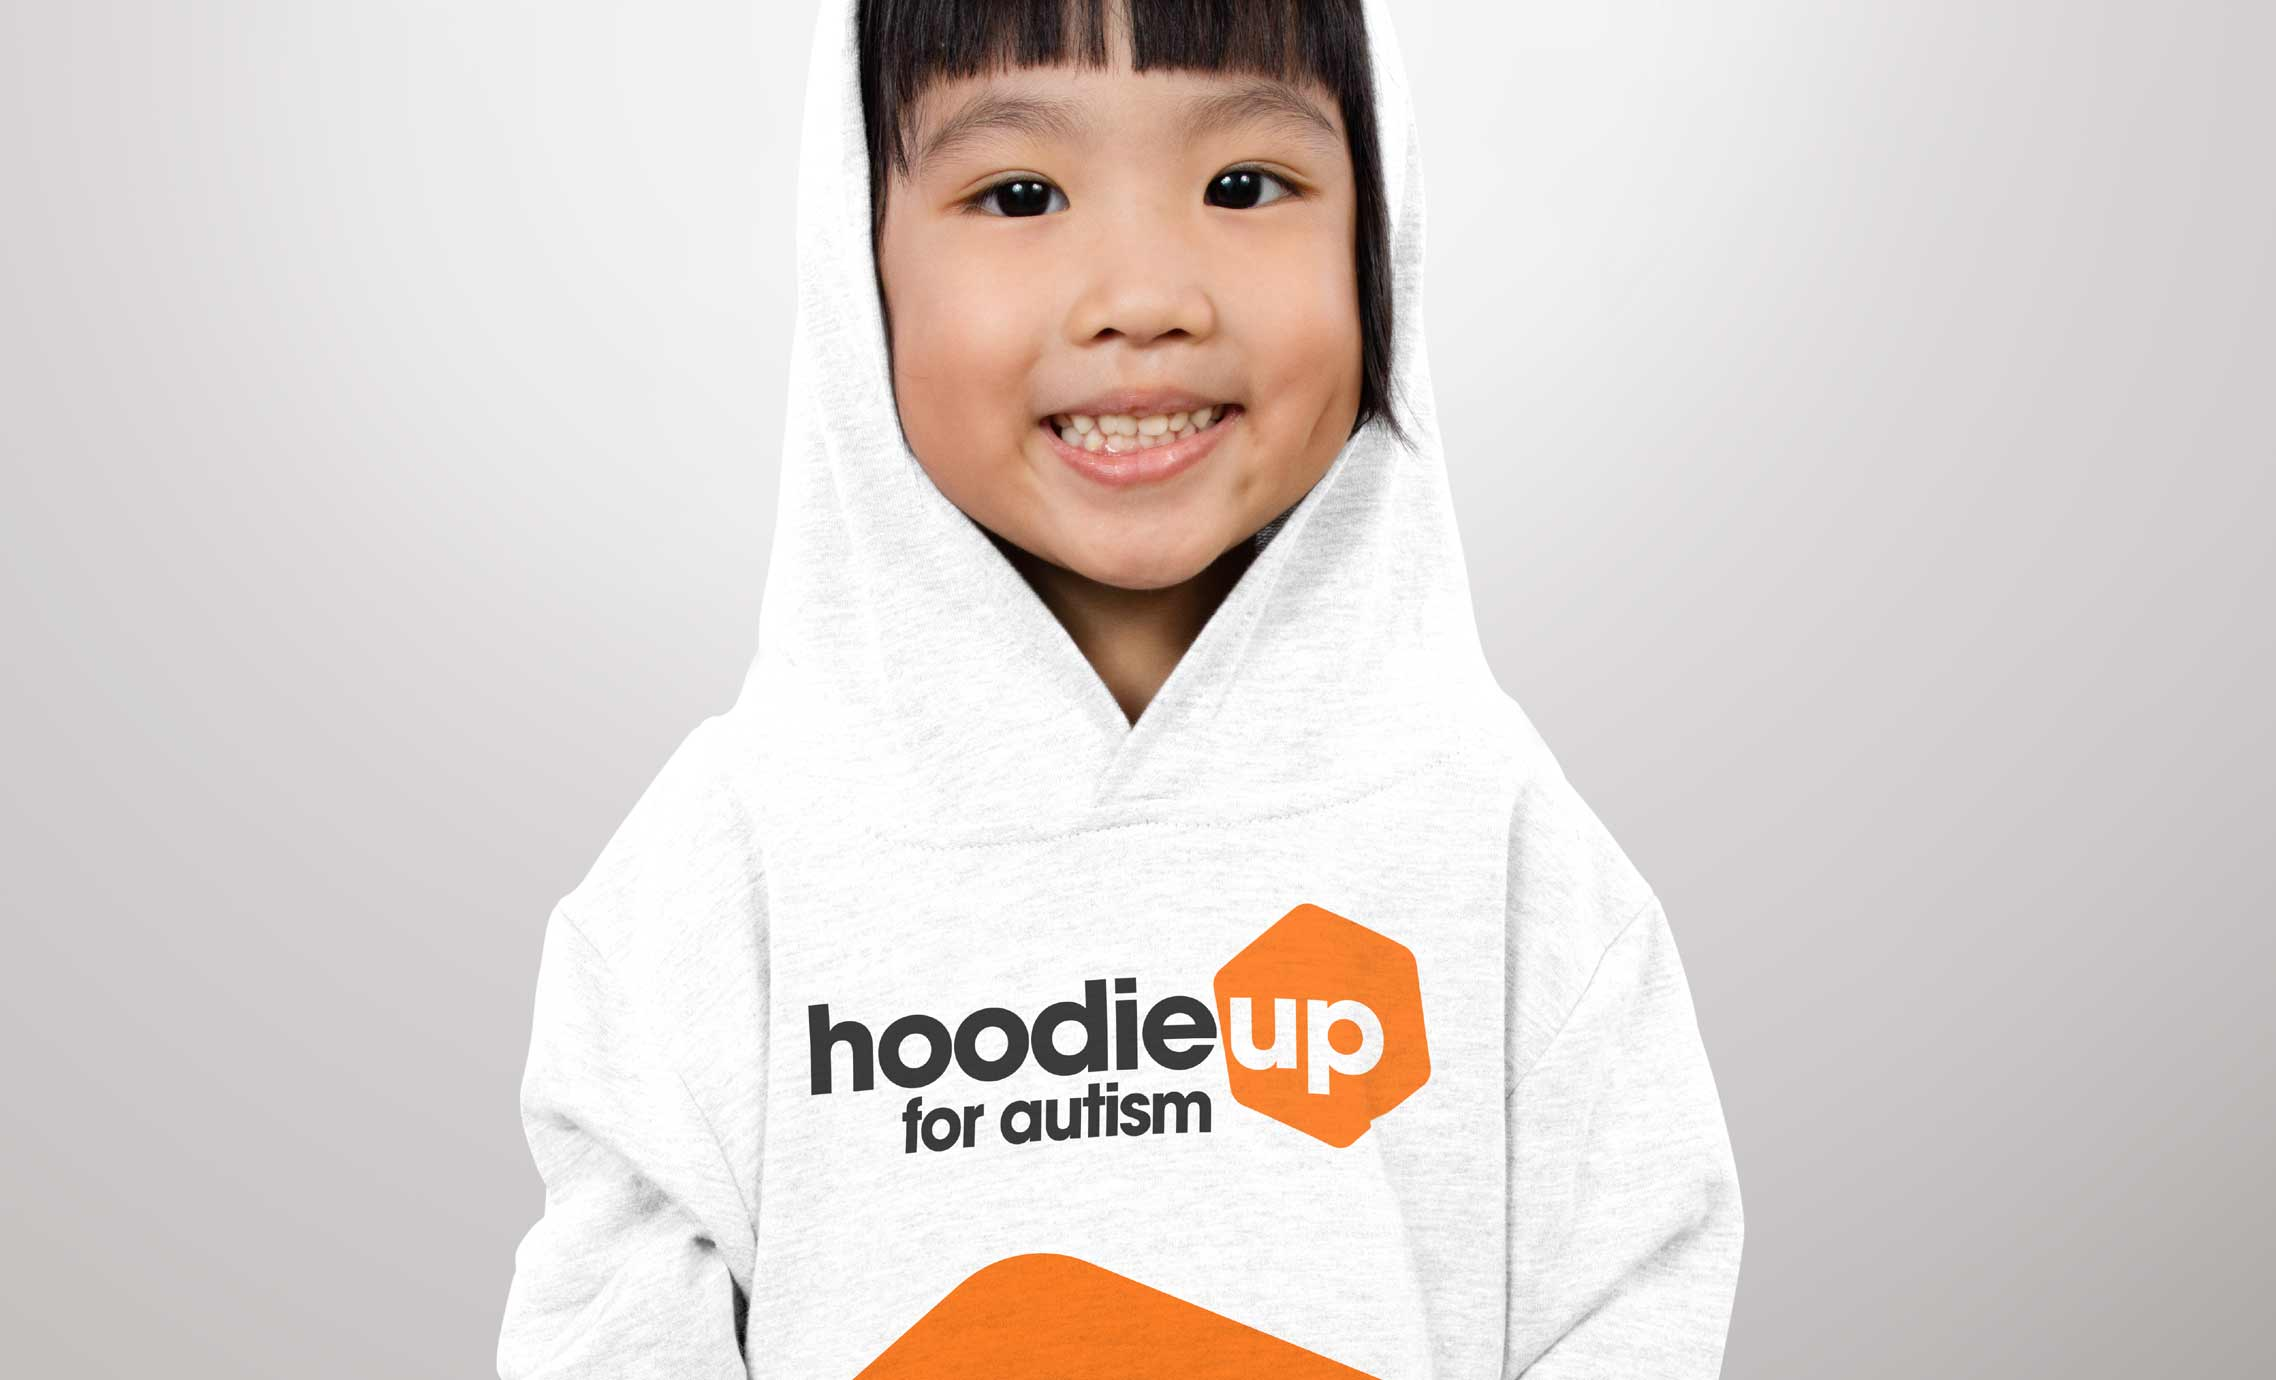 Girl in a hoodie fundraiser image for Hoodie Up